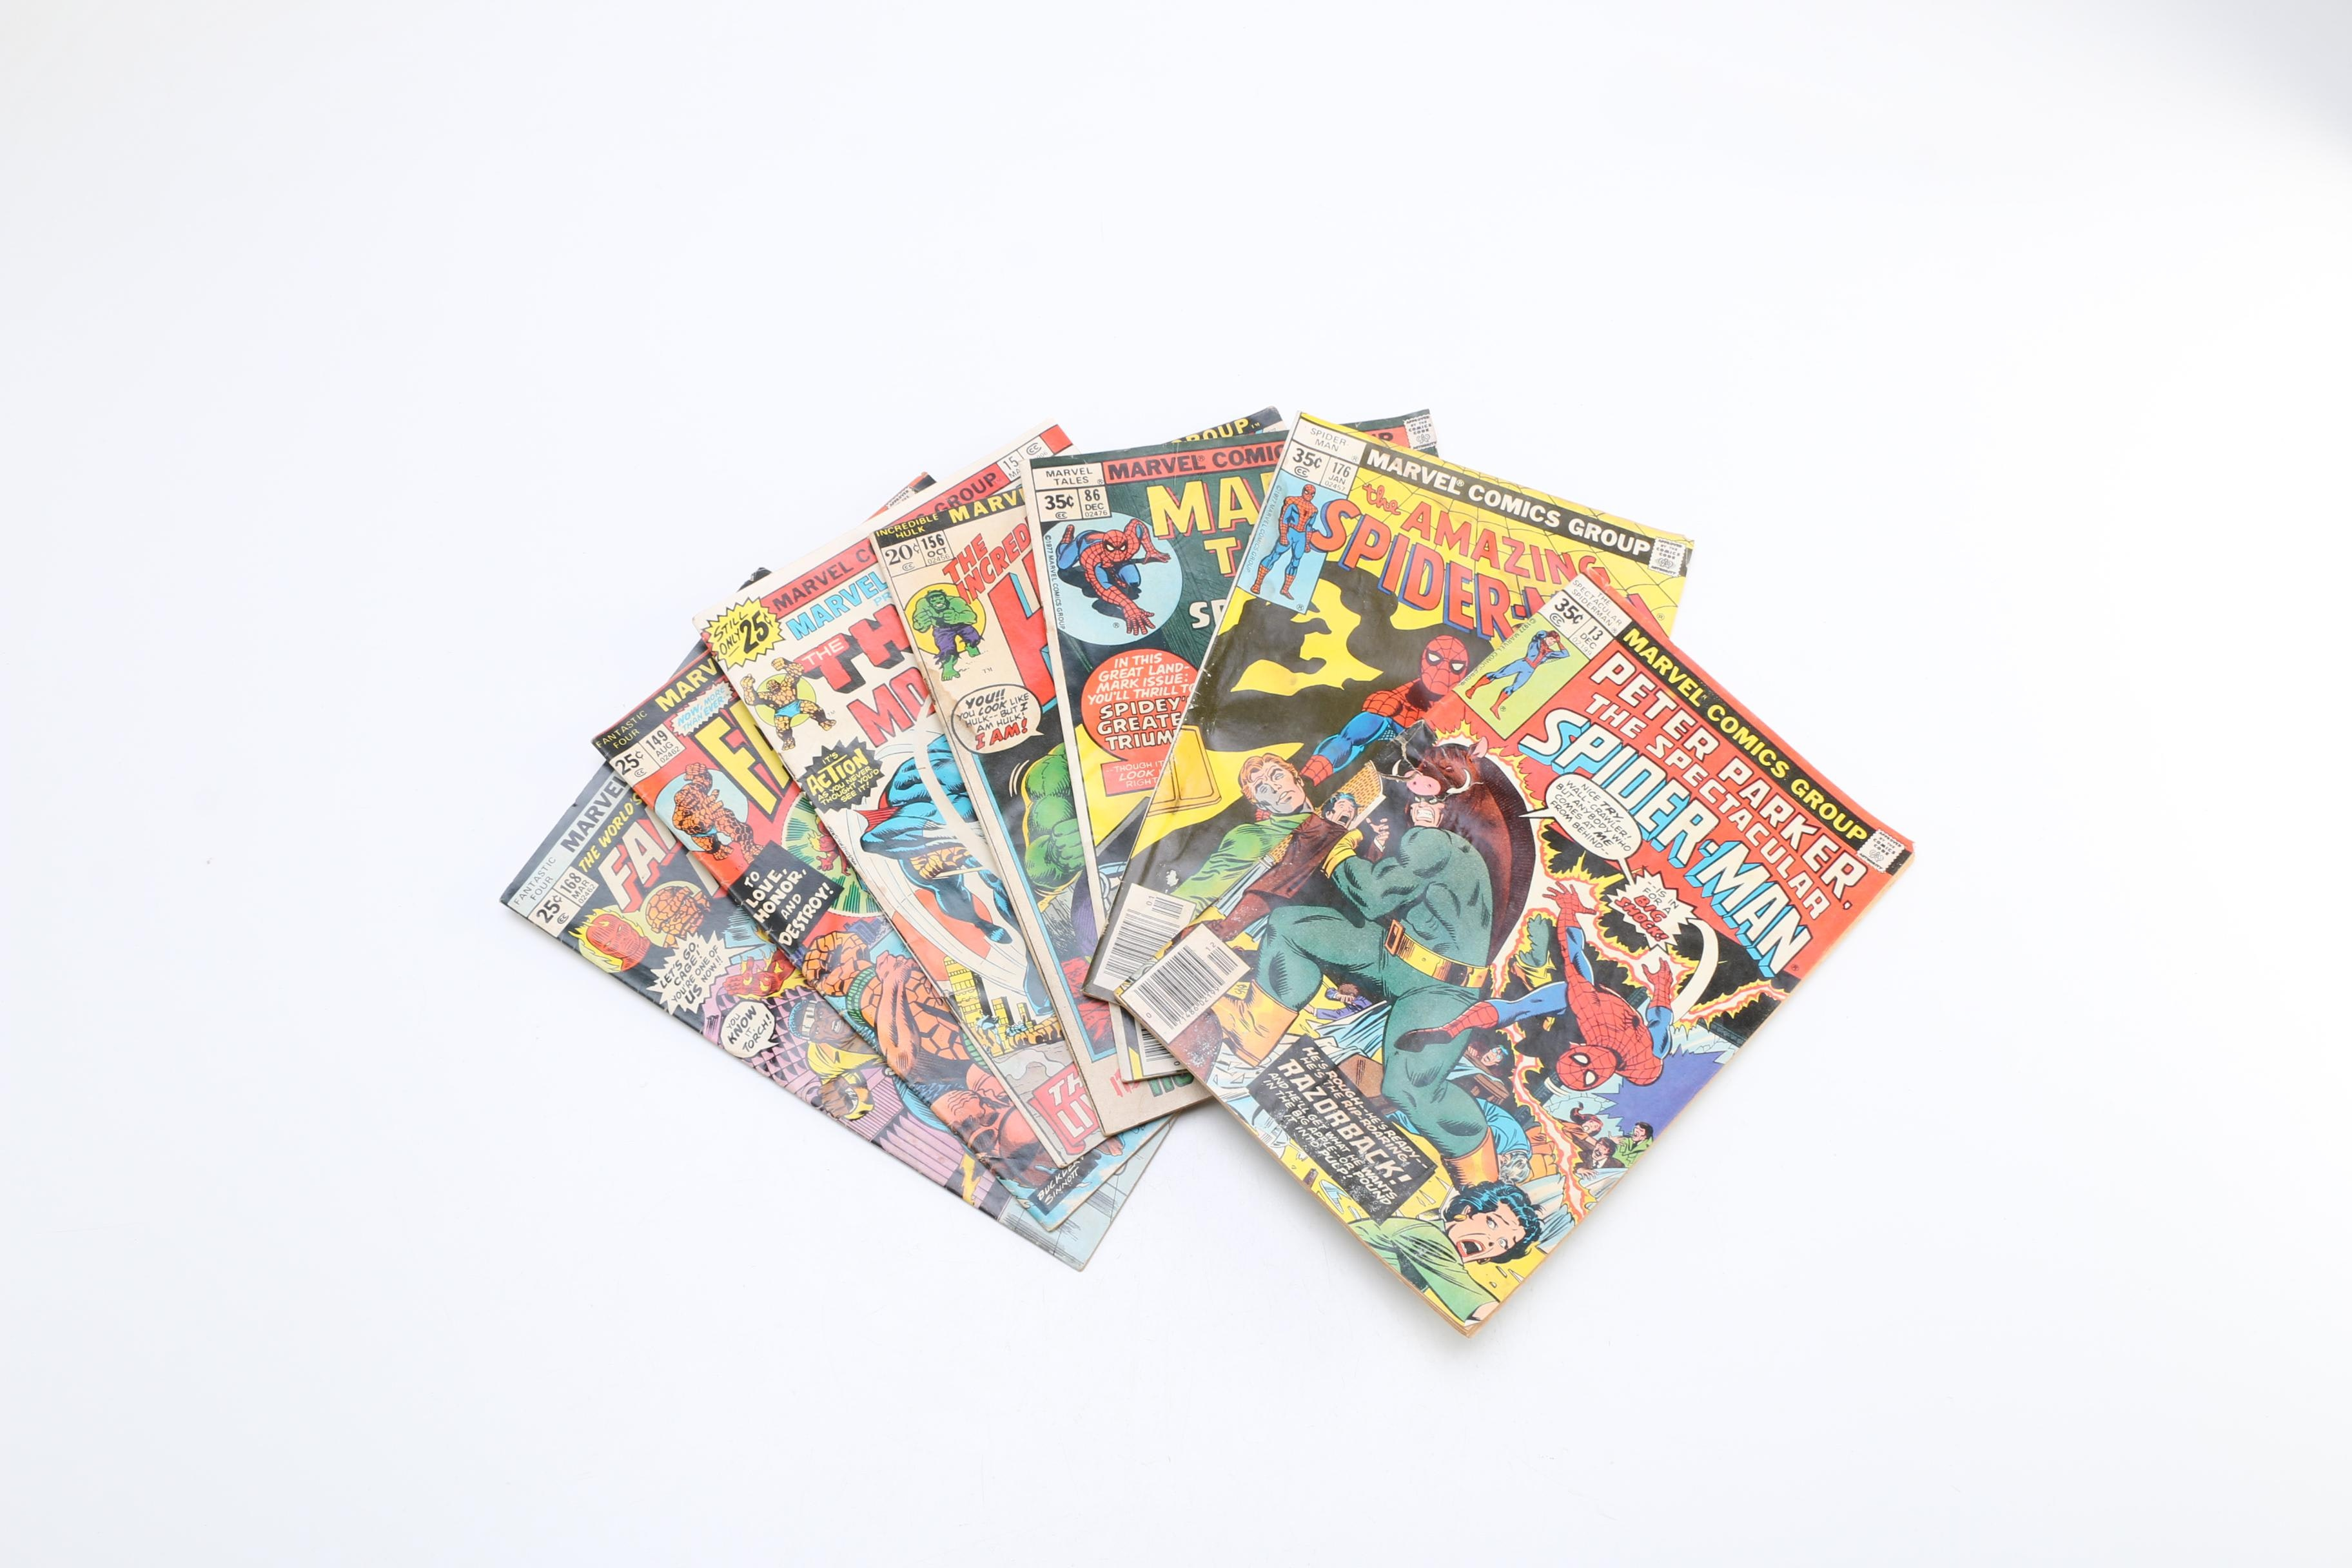 1970s Marvel Comics Featuring Spider-Man and Fantastic Four